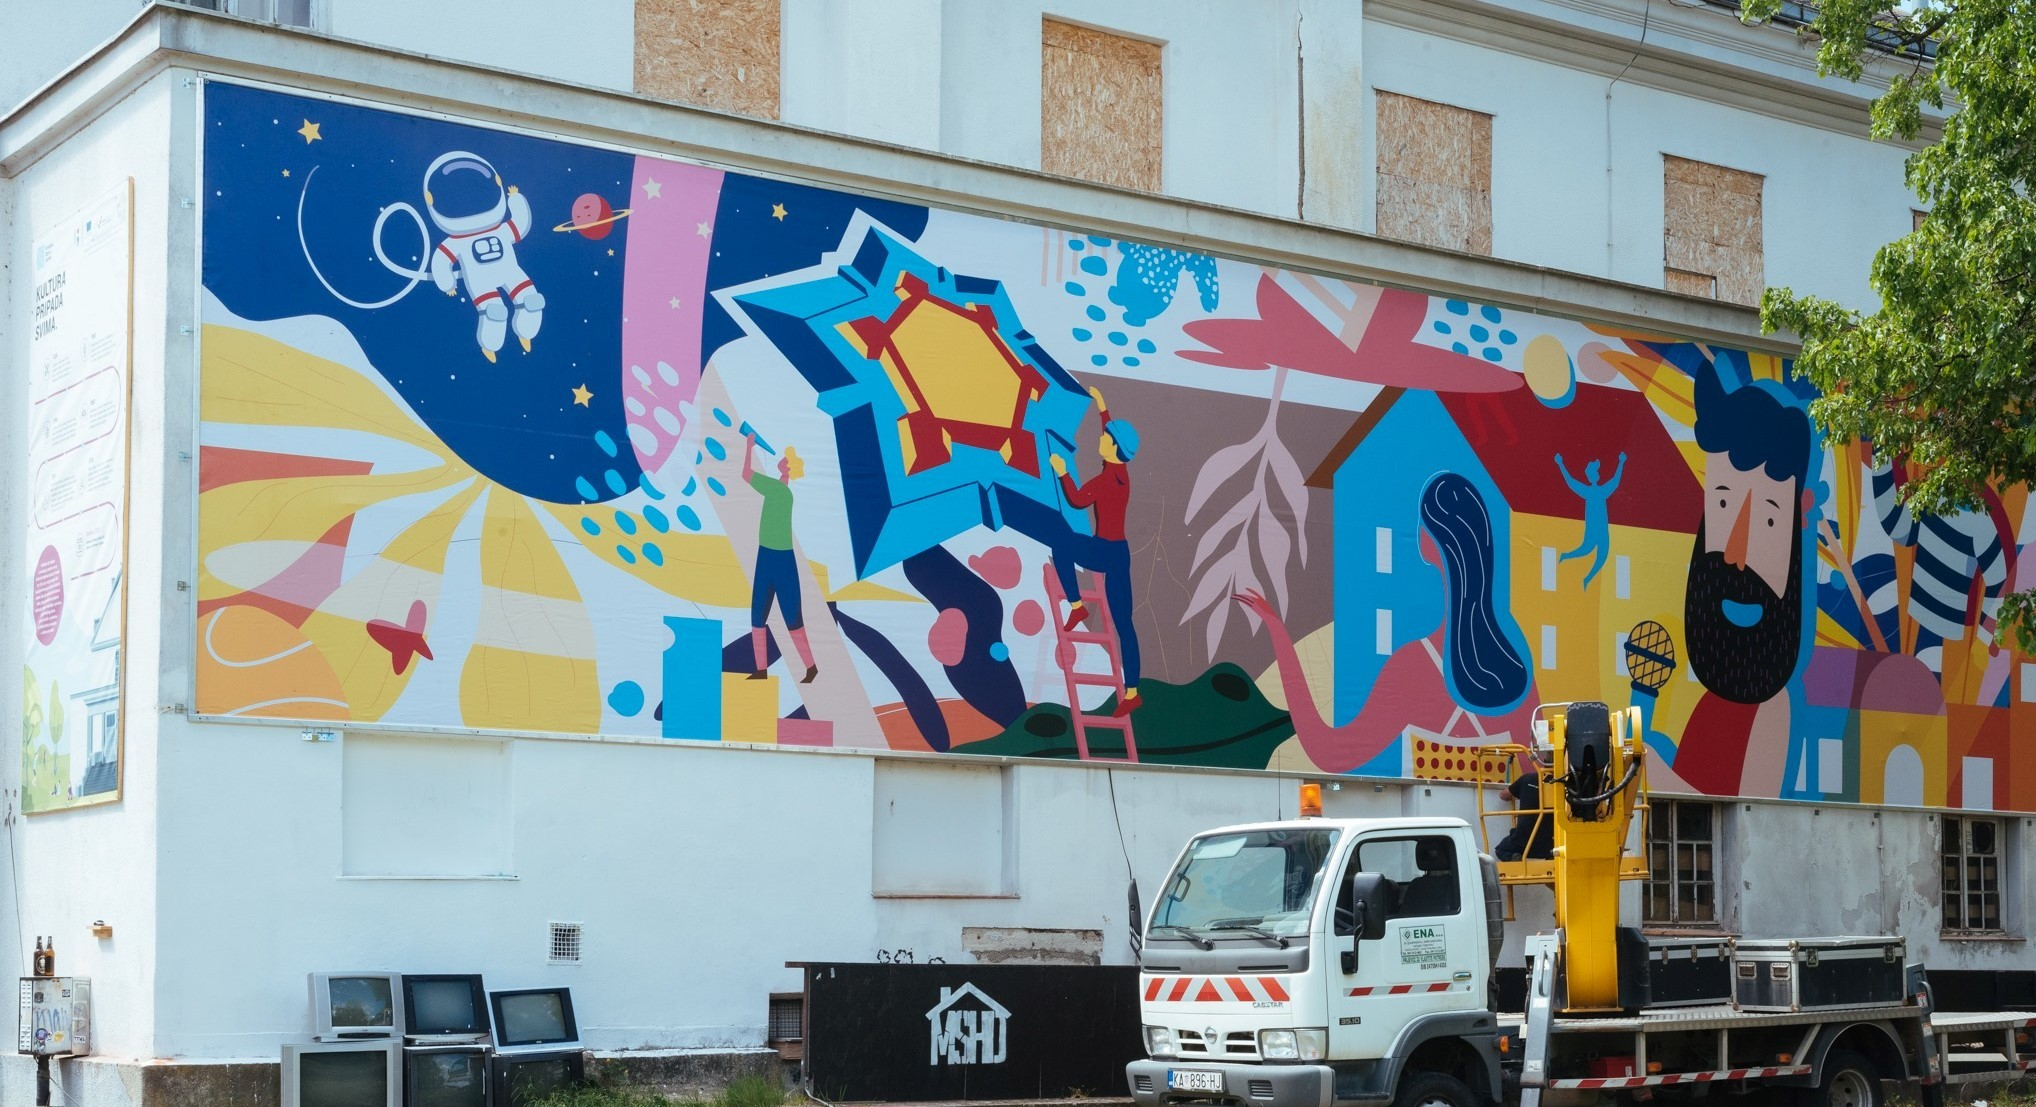 Karlovac comes alive with colourful new murals